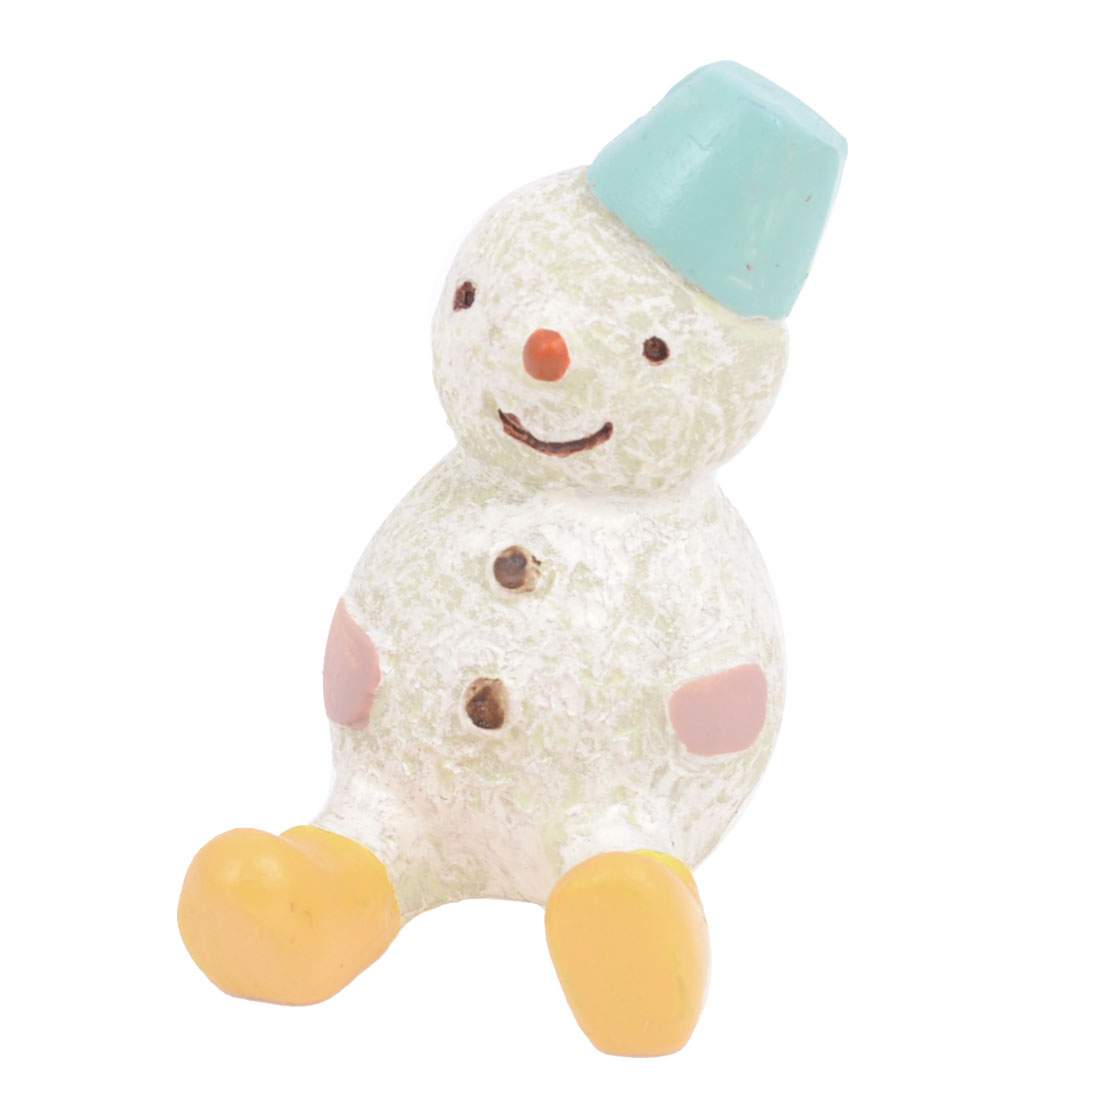 House Christmas Decor White Resin Handicraft Hat Dressing Snowman Decoration